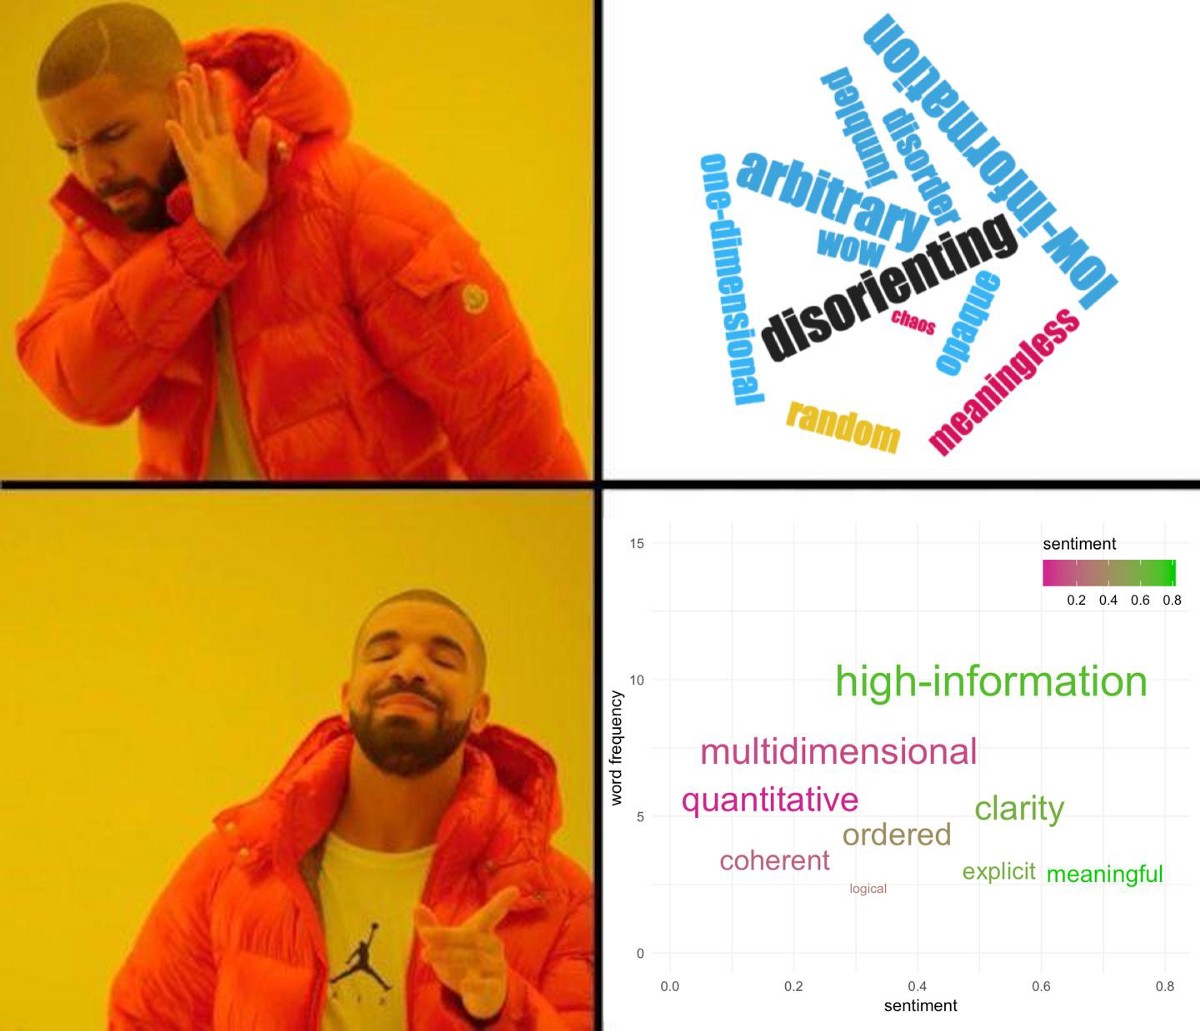 RIP wordclouds, long live CHATTERPLOTS - Towards Data Science